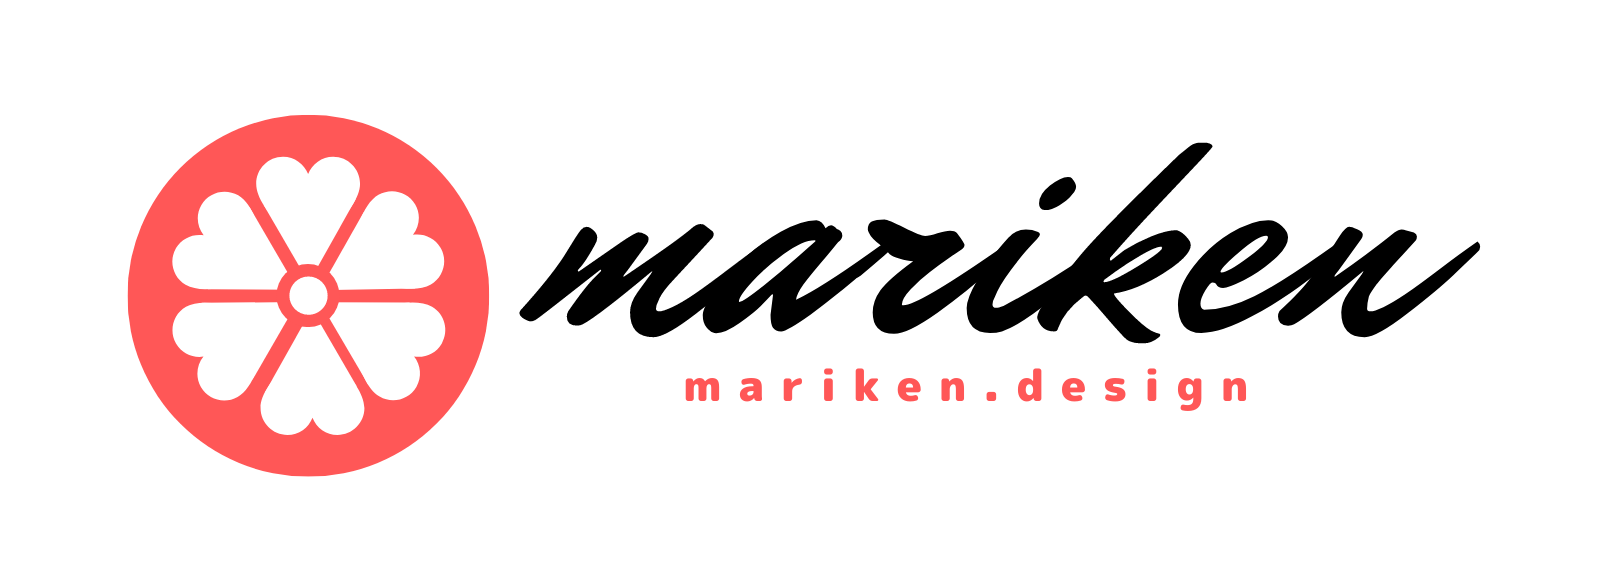 mariken design & import